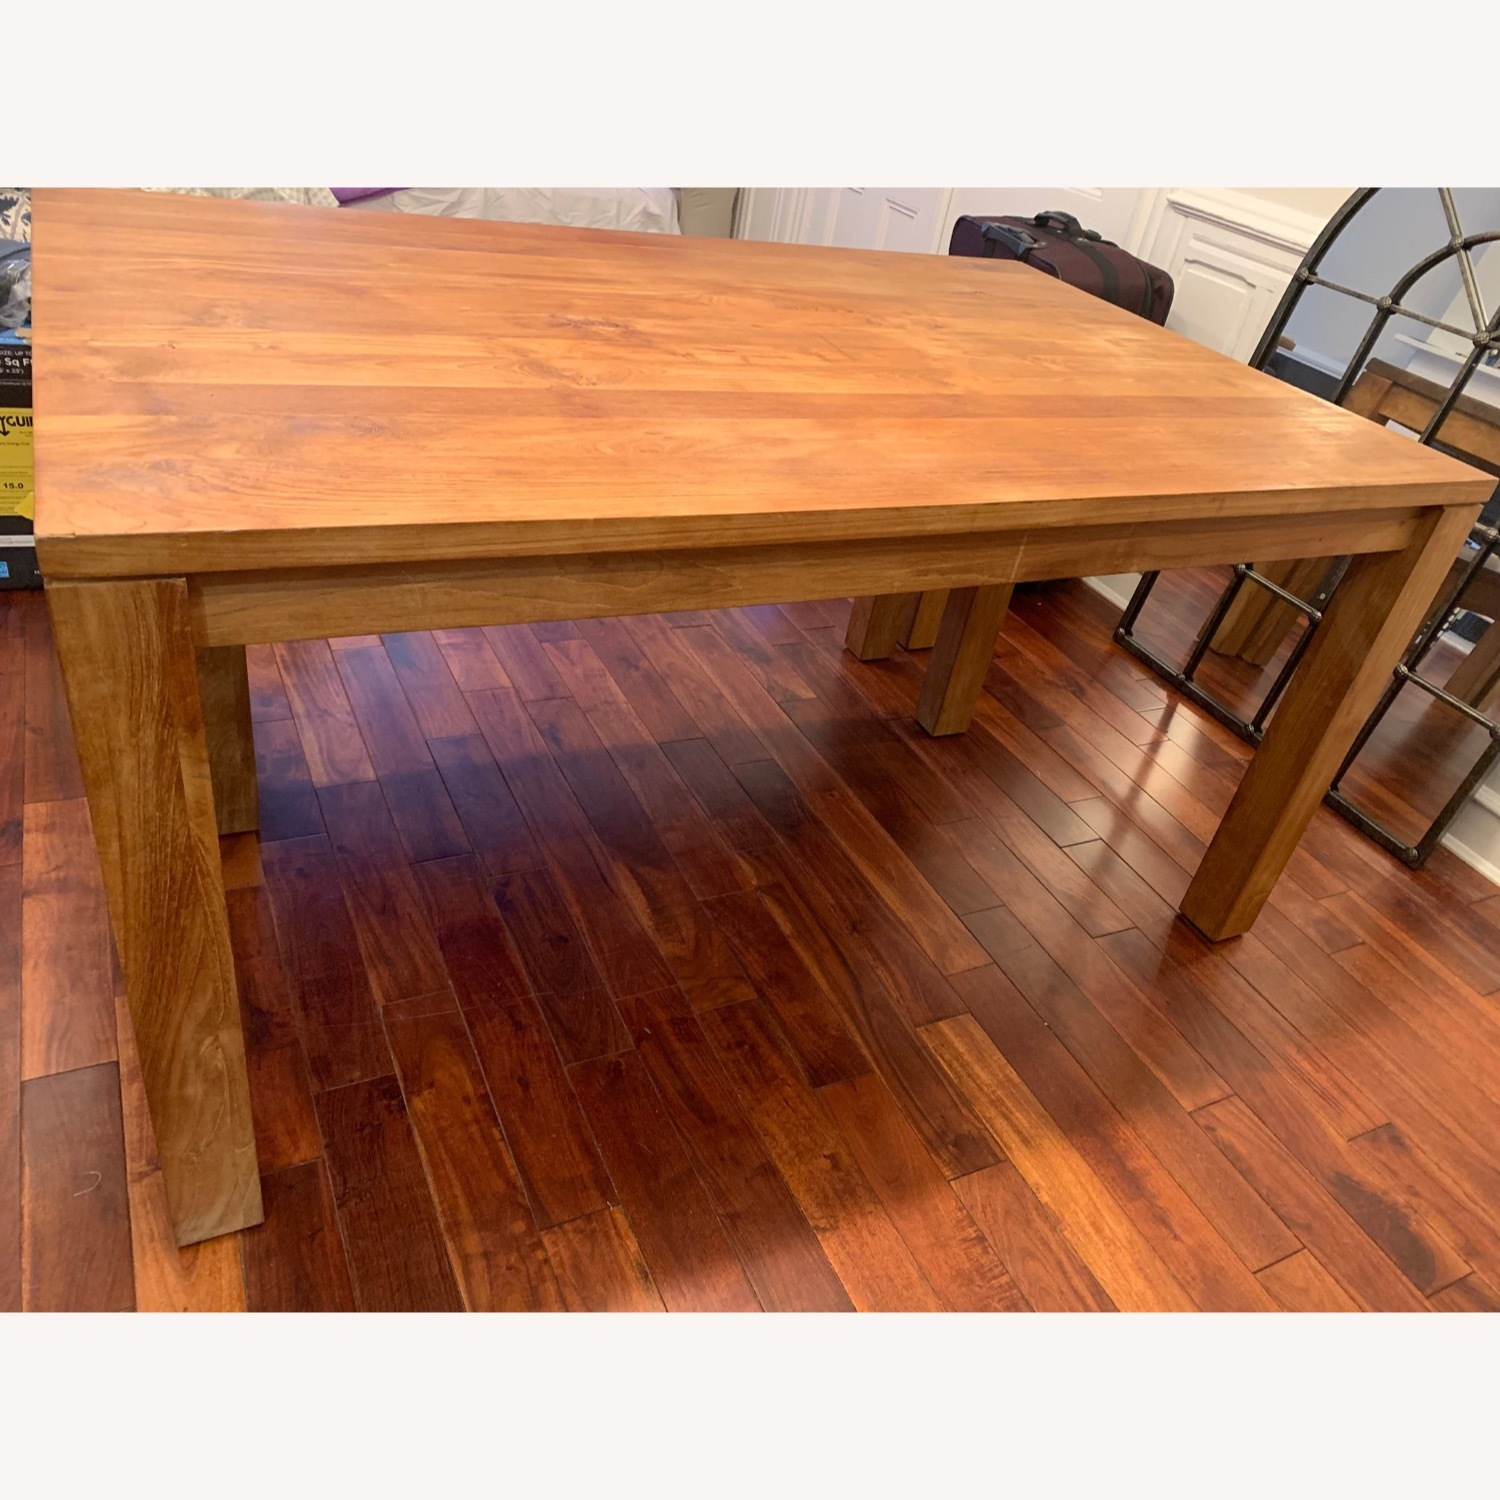 Crate & Barrel Pacifica Dining Table - image-11